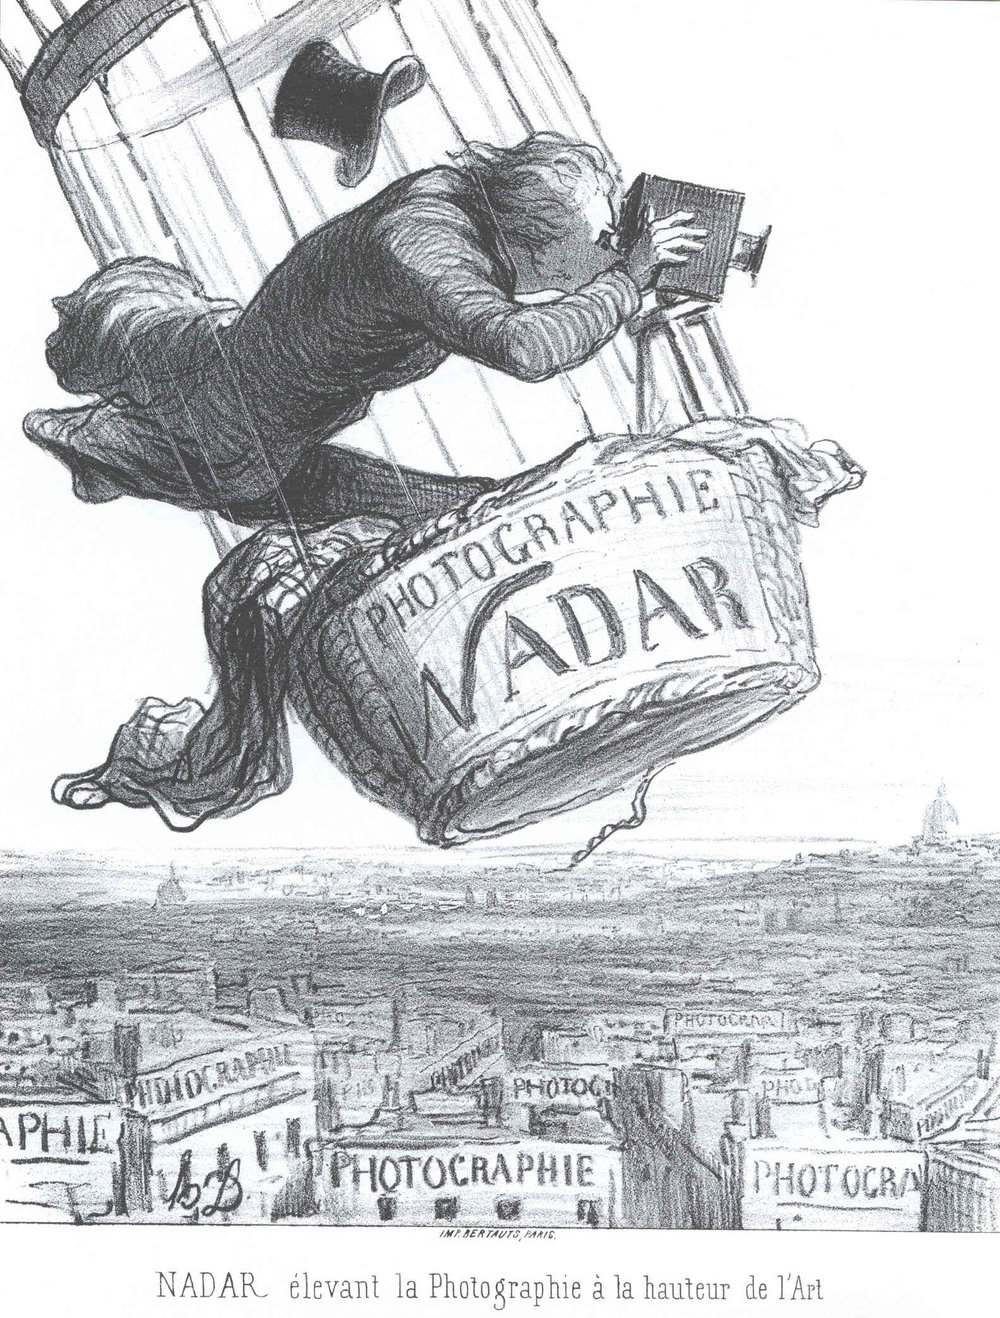 """This cartoon suggests that Nadar, famous for photographing Paris from a hot air balloon, would go to any lengths to """"elevate photography to a high art."""""""